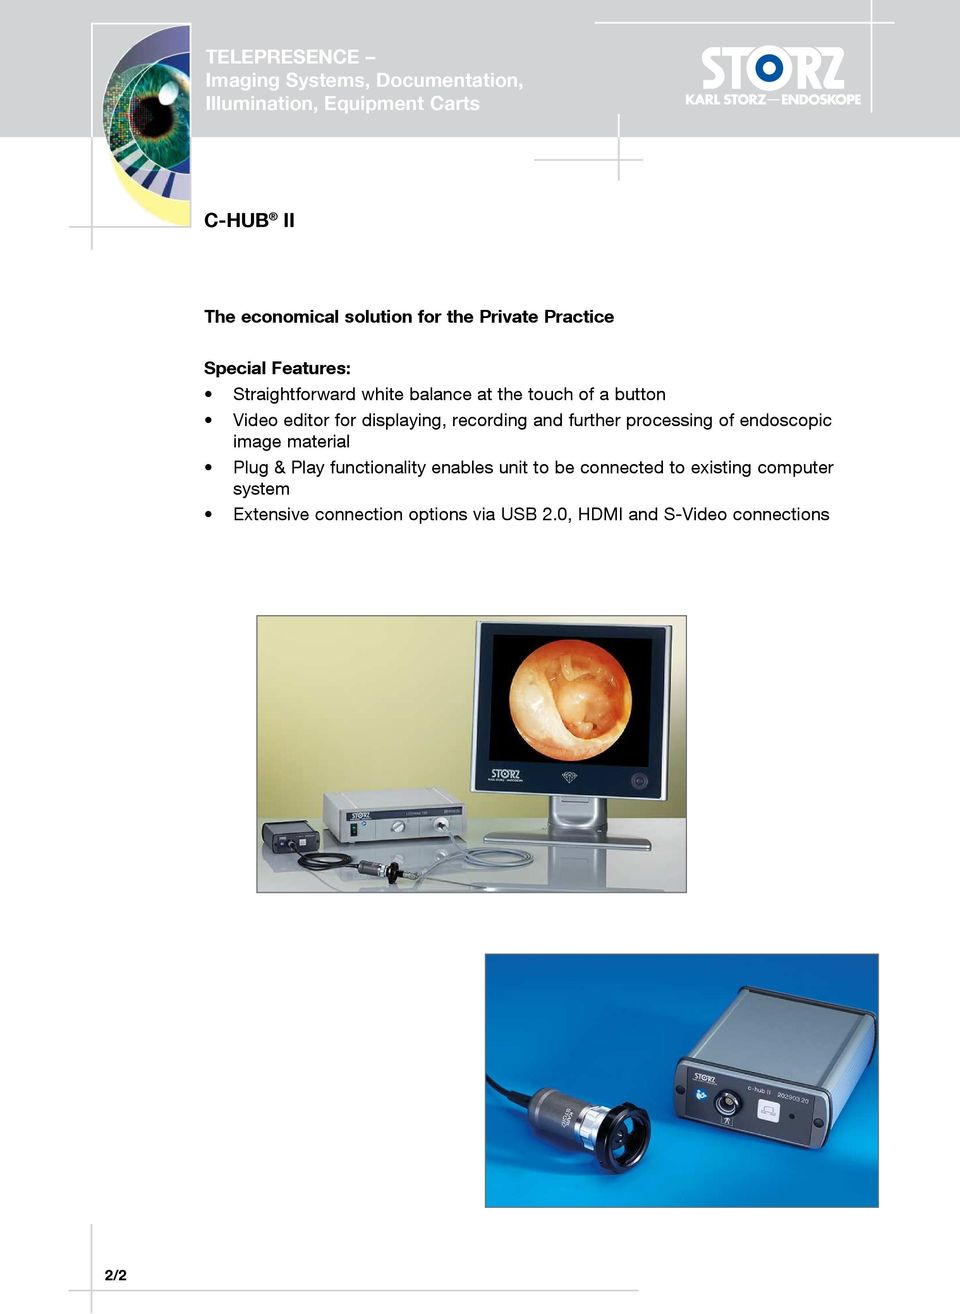 displaying, recording and further processing of endoscopic image material Plug & Play functionality enables unit